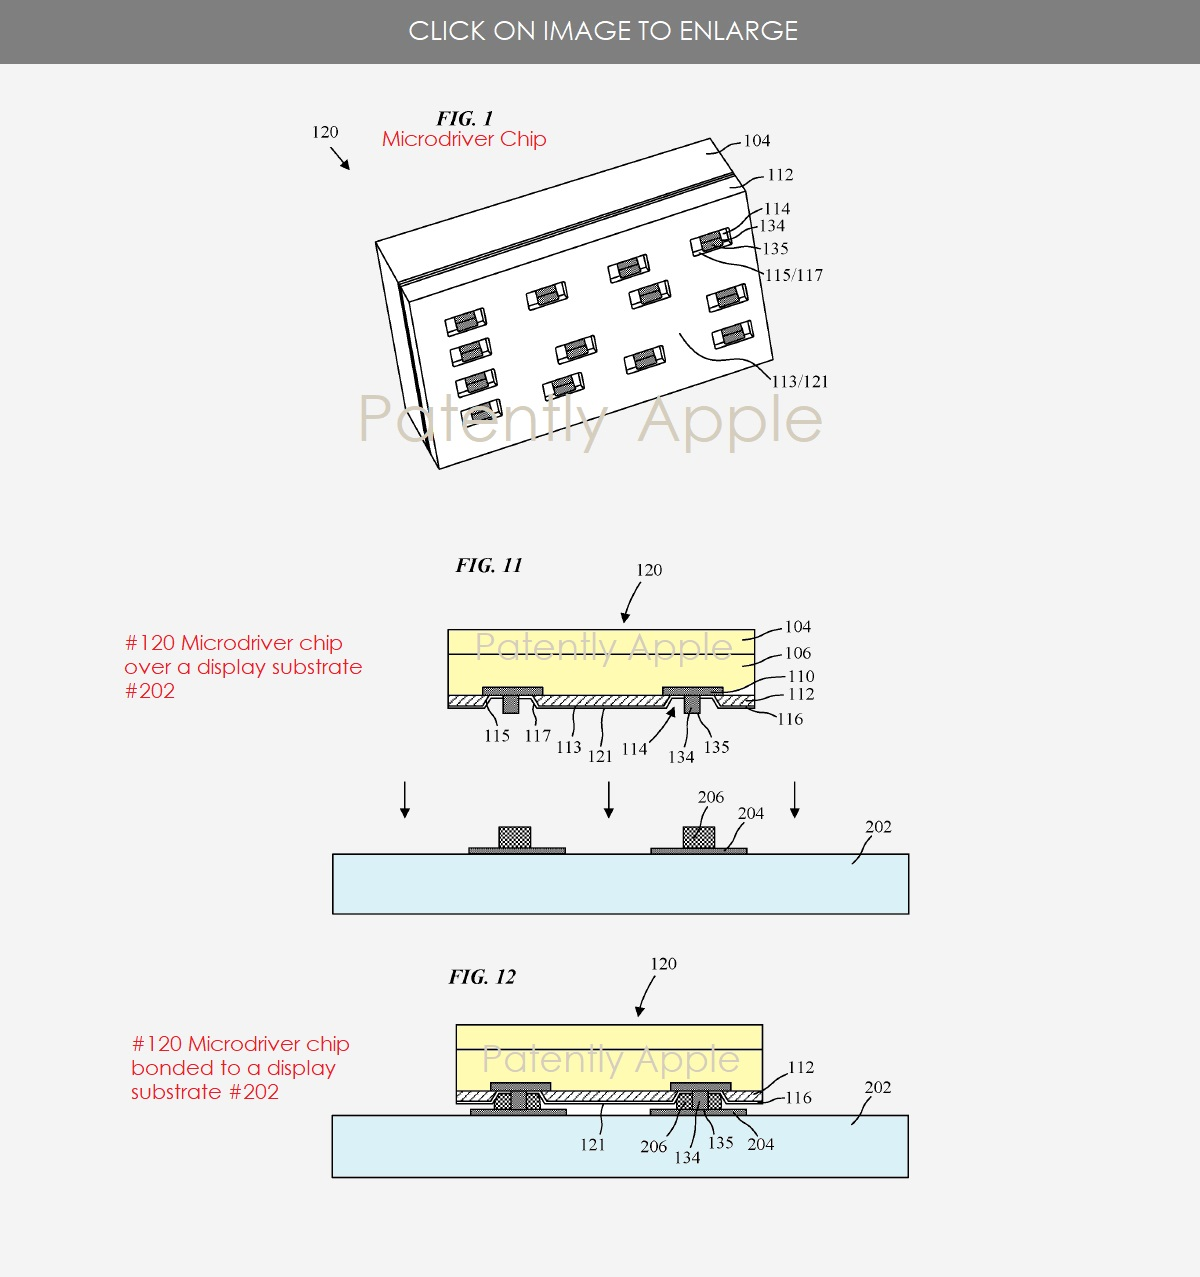 A new Micro-LED Patent Application from Apple was published